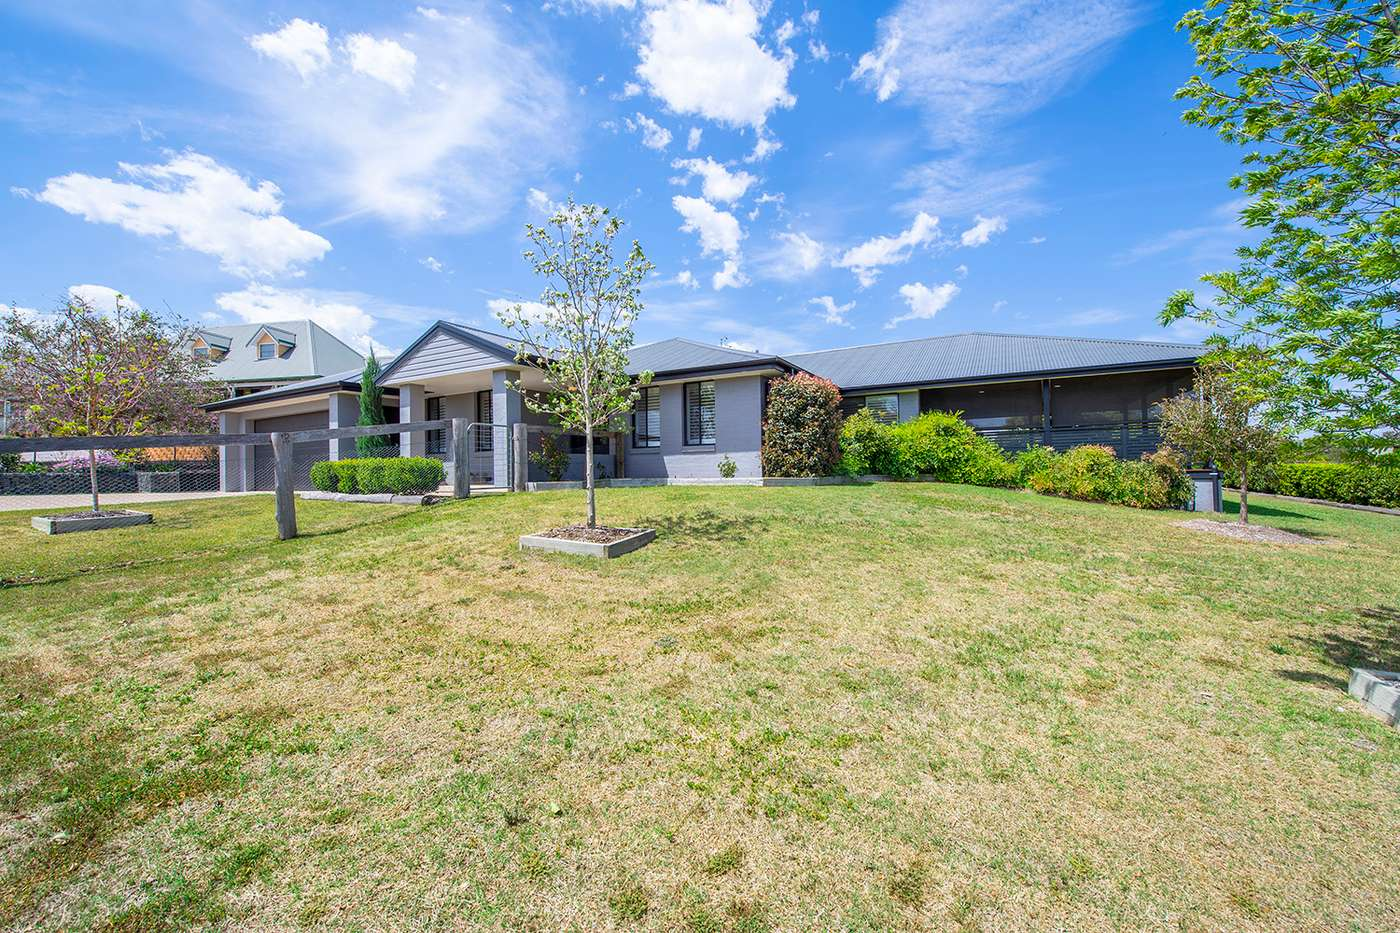 Main view of Homely rural listing, 17 Stanstead Close, Scone, NSW 2337